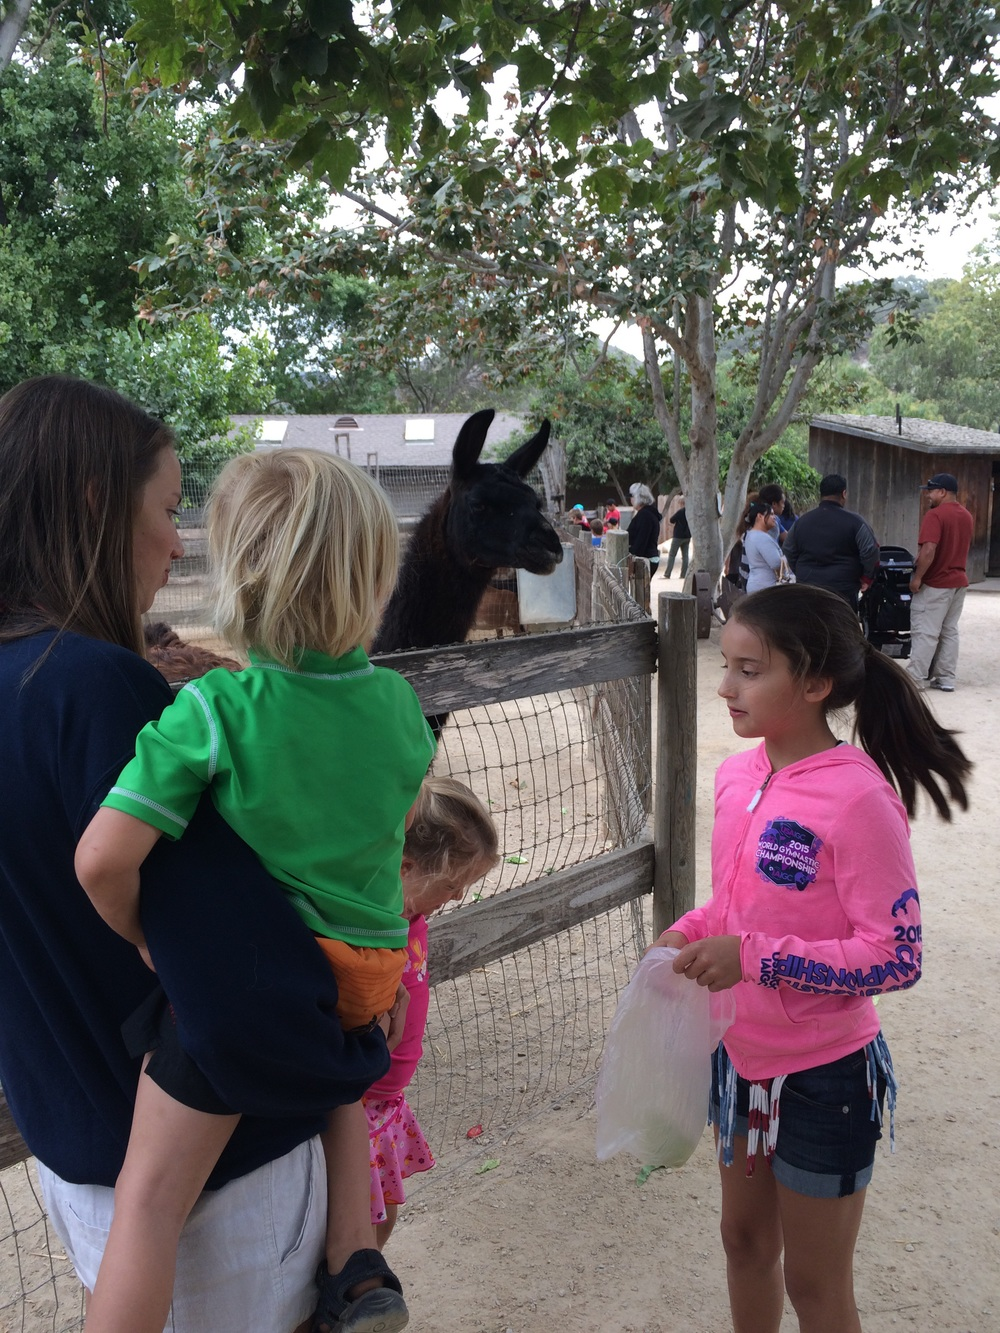 Here we are at the animal farm feeding the llama!